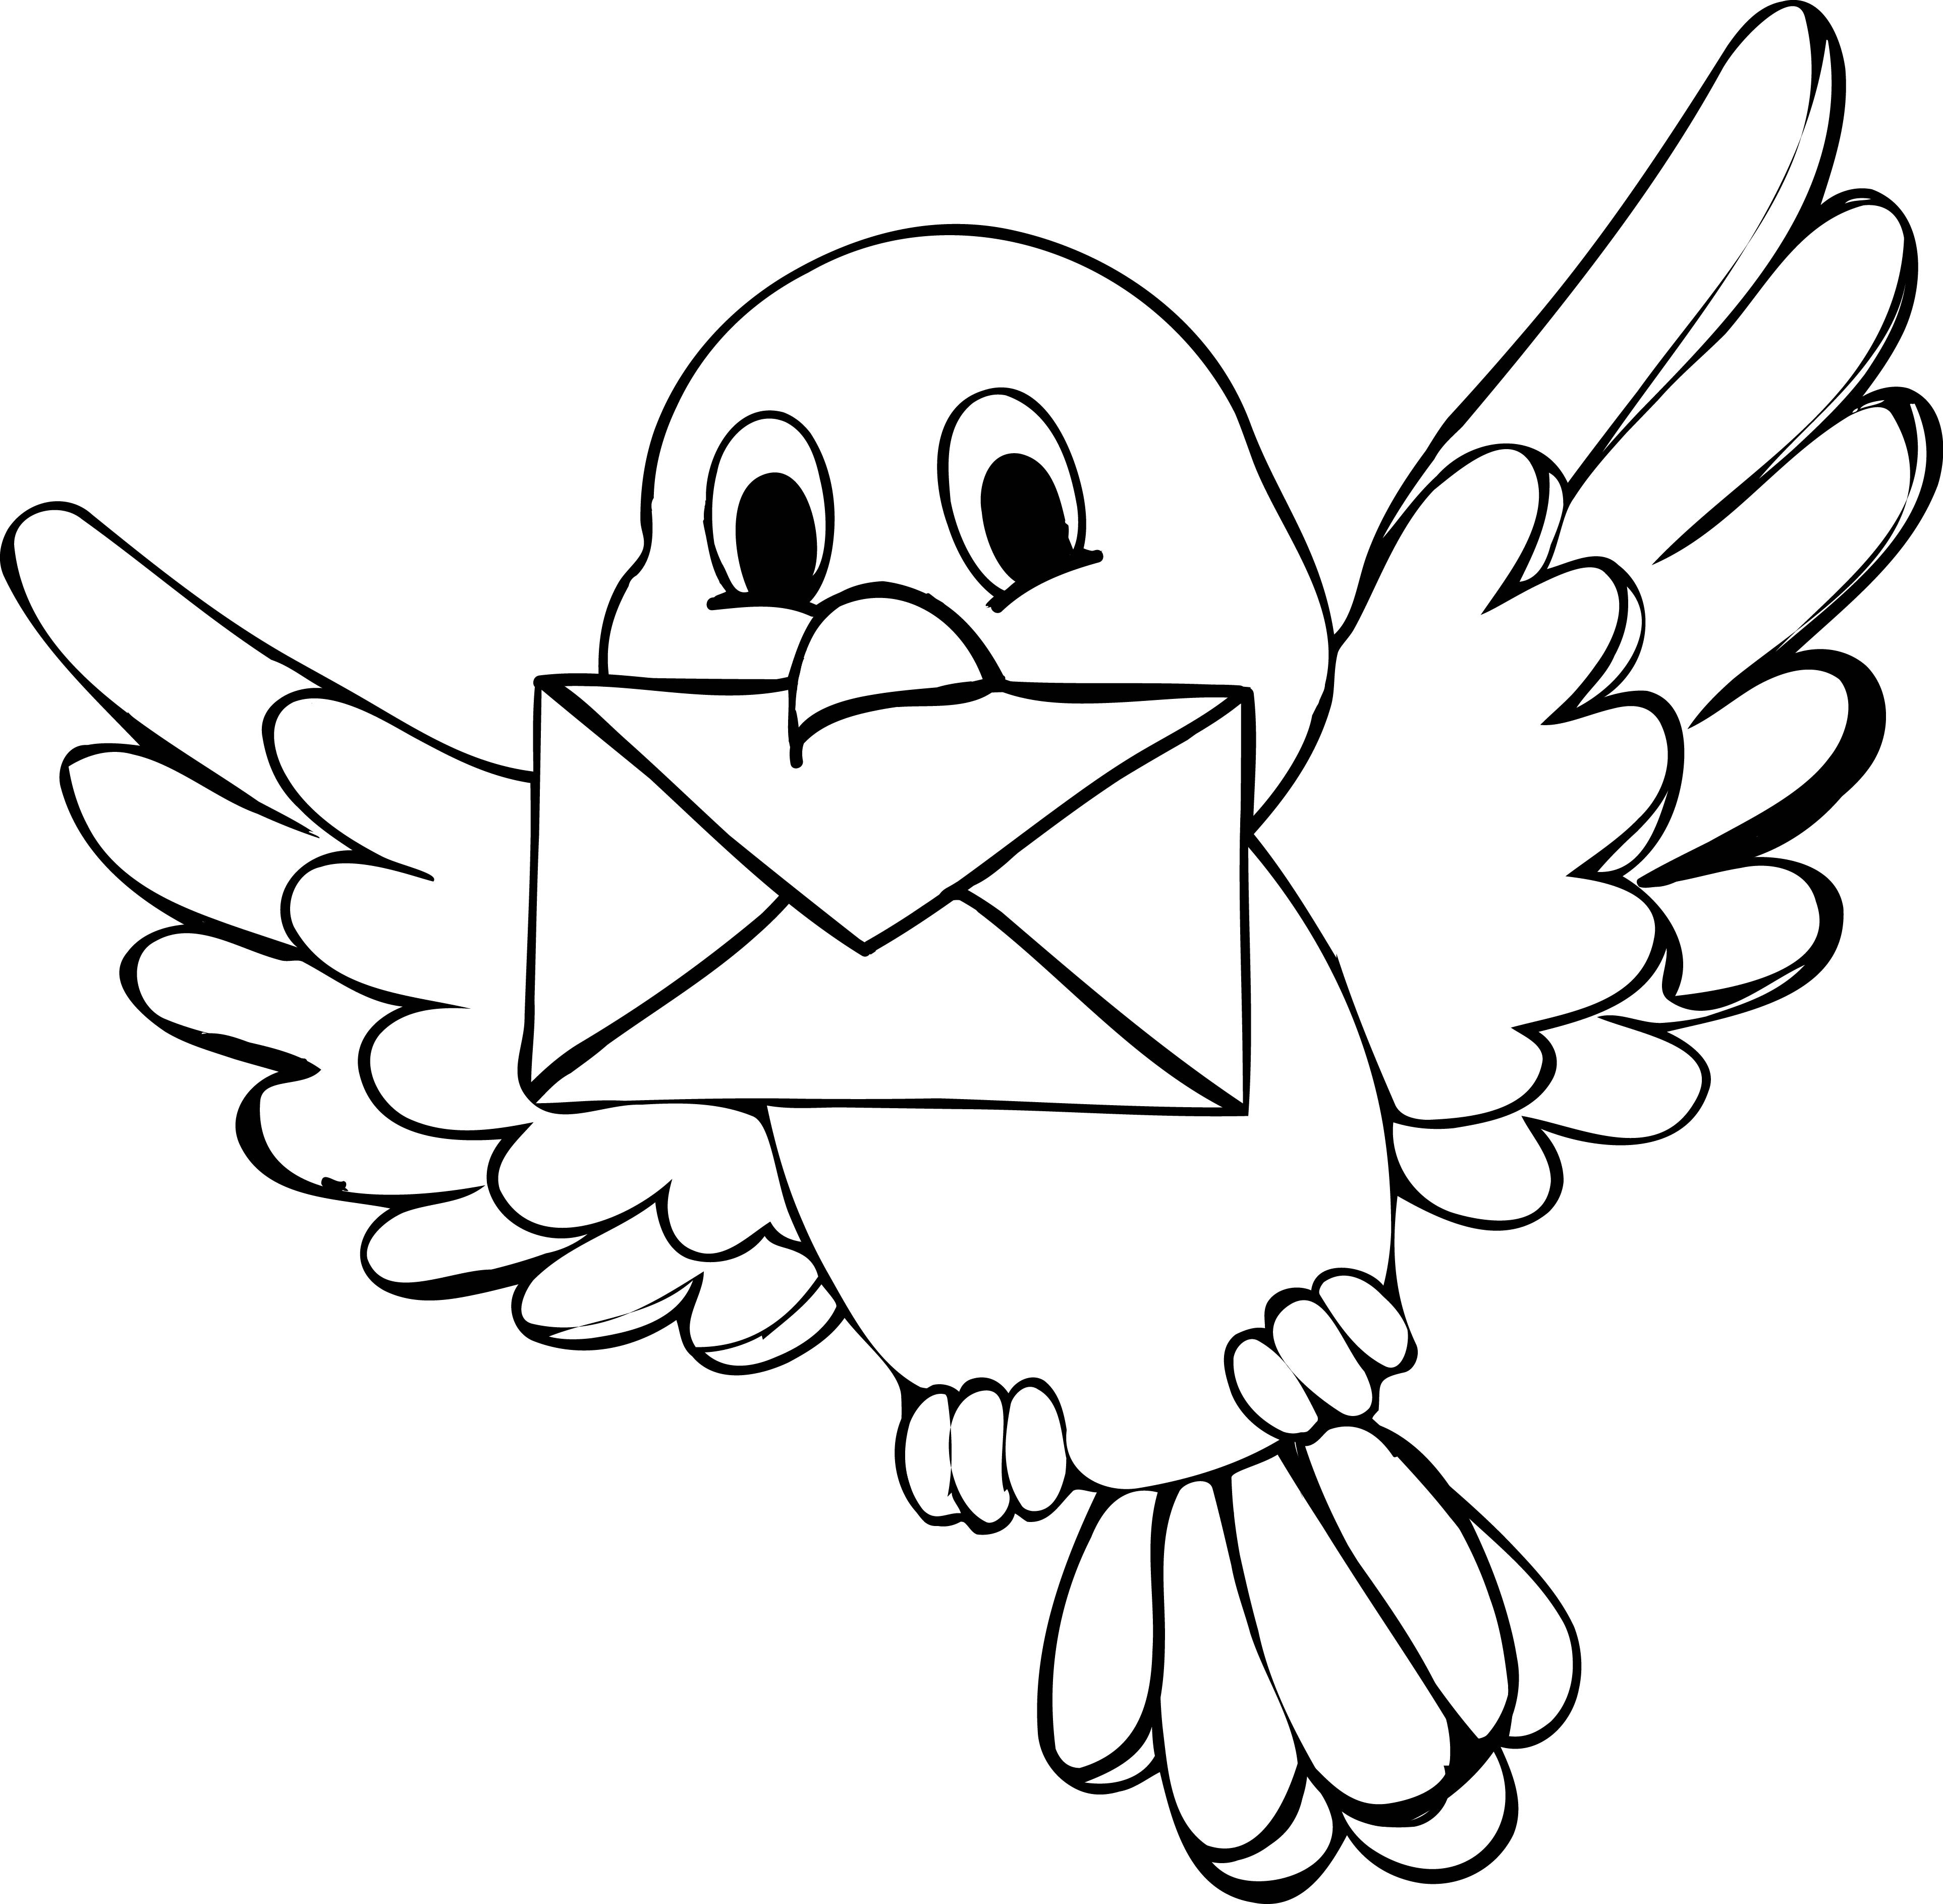 Free Printable Bird Coloring Pages  Cute Birds Coloring Pages